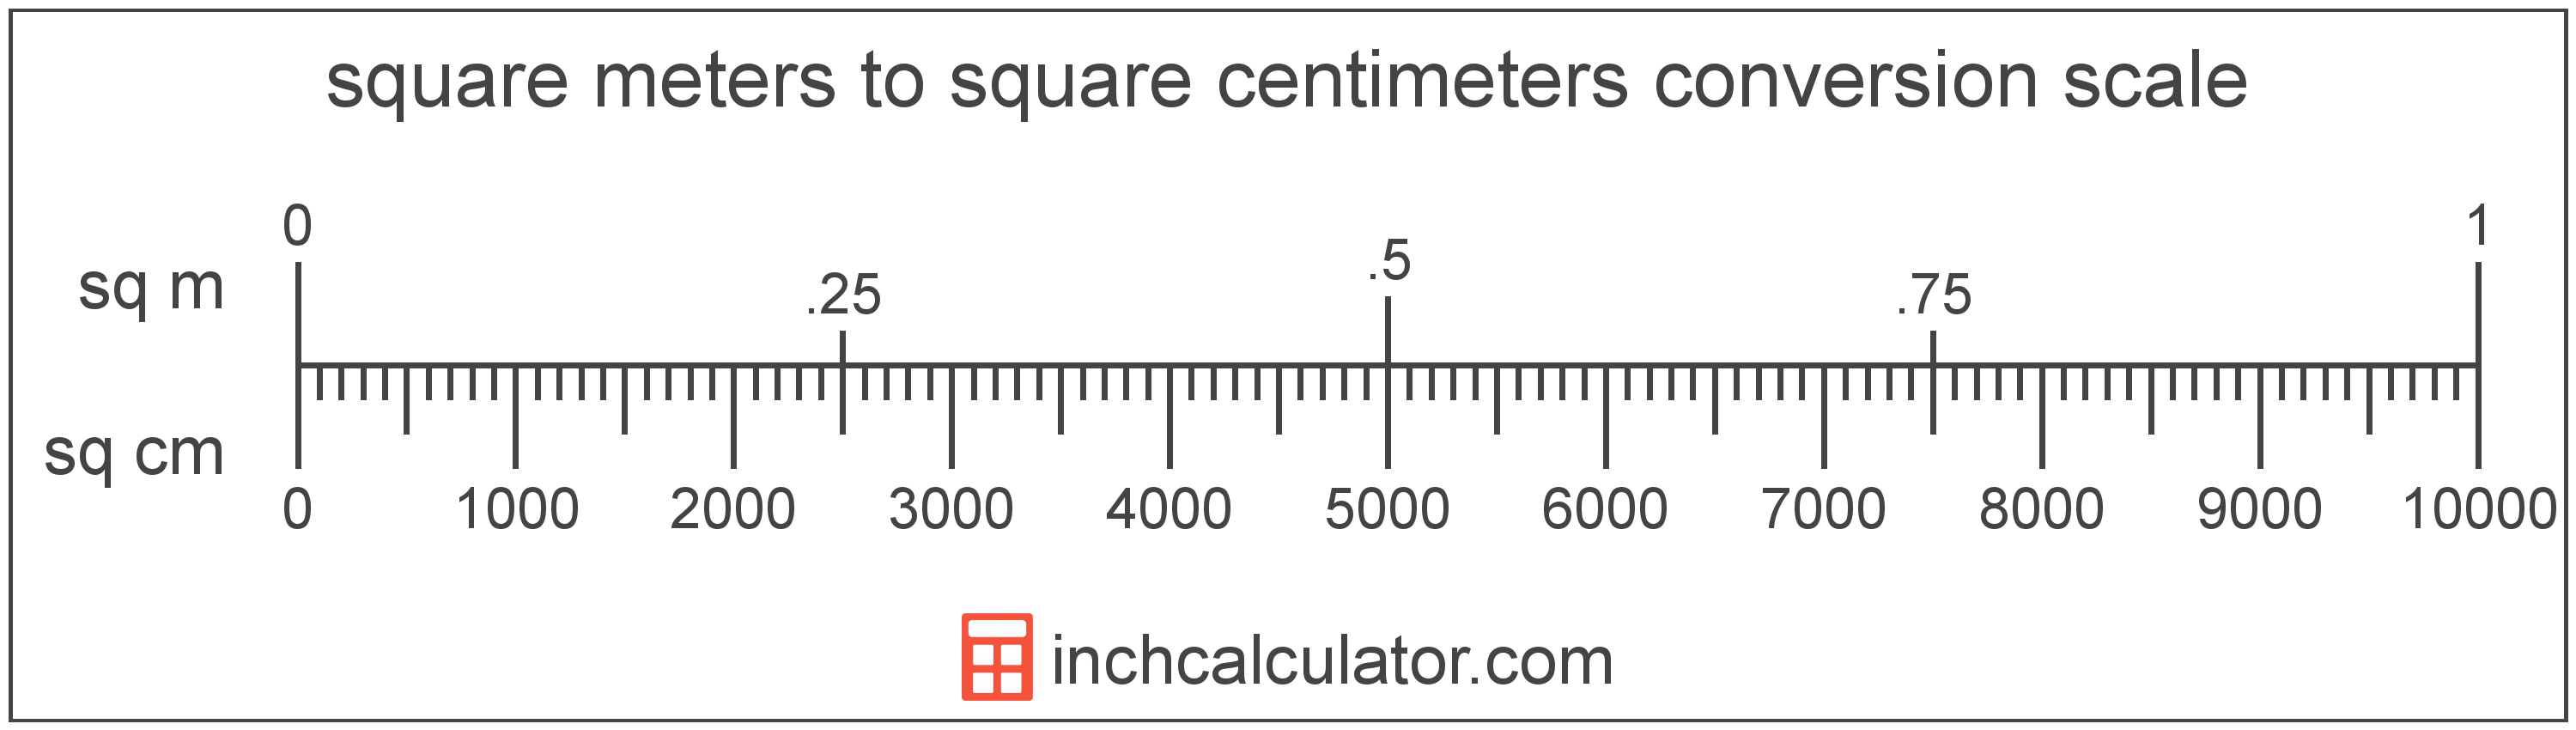 Square Centimeters To Square Meters Conversion Sq Cm To Sq M